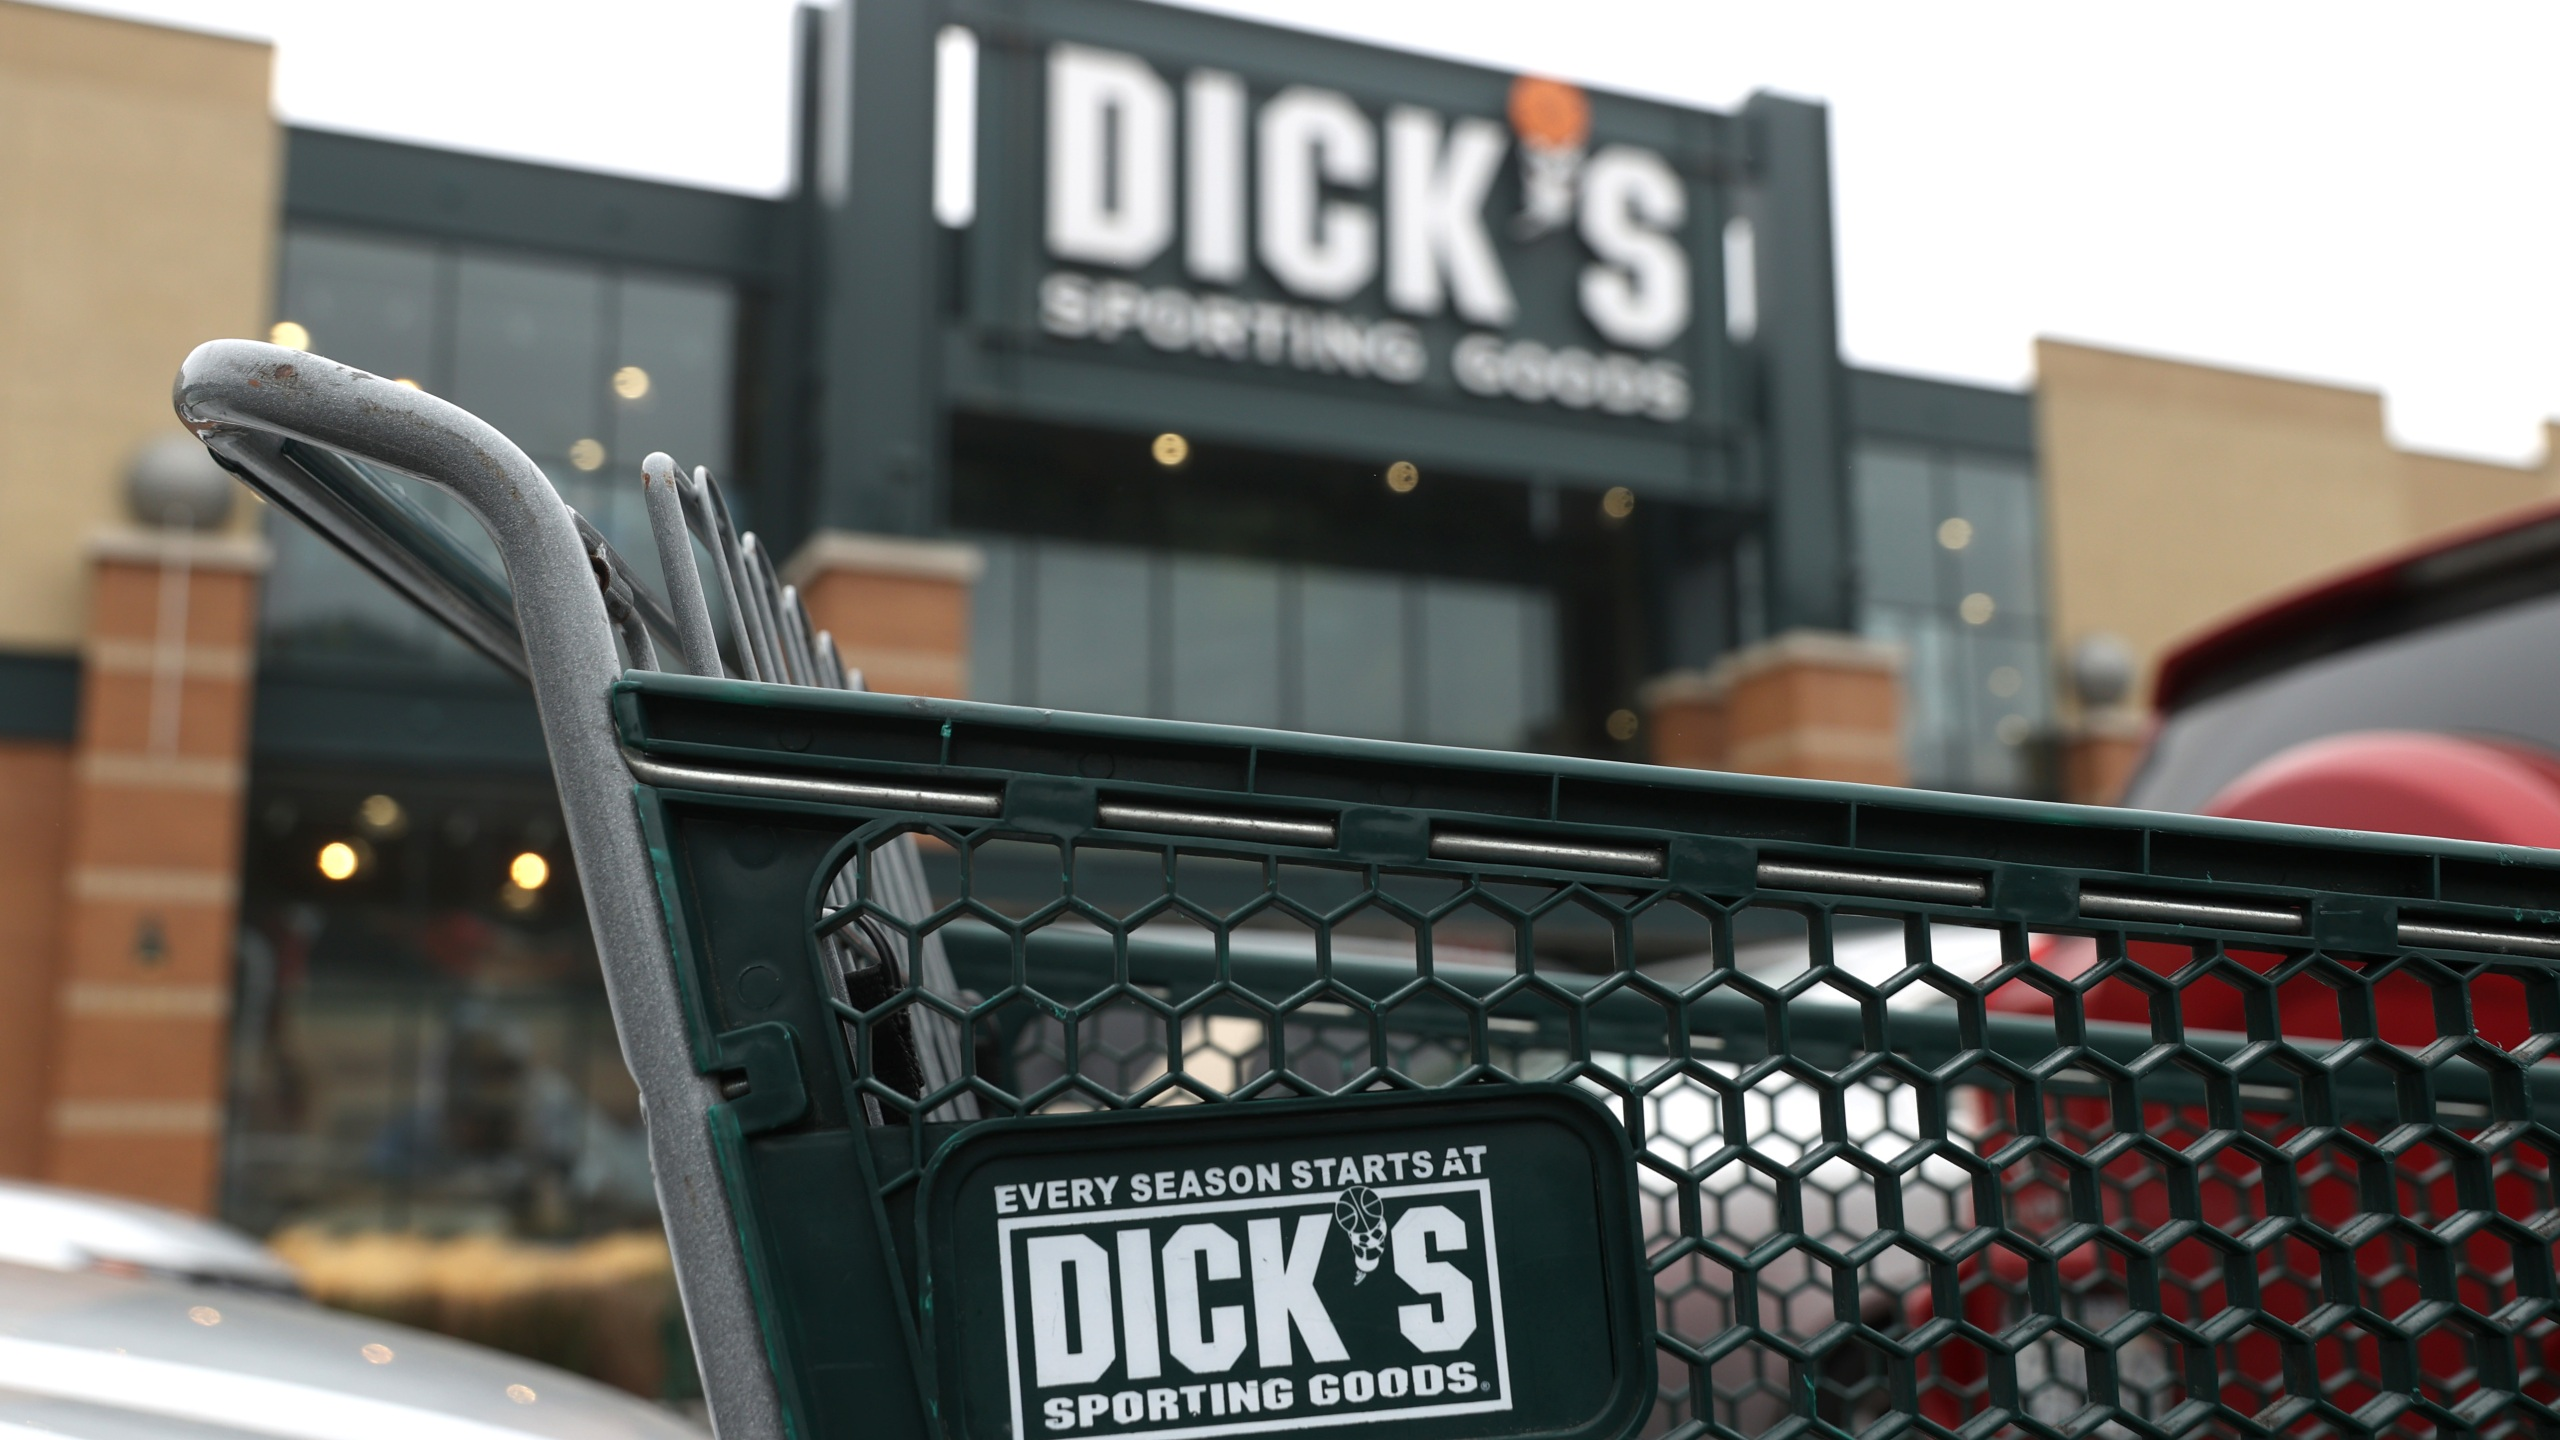 A shopping cart sits in front of a Dick's Sporting Goods store on Aug. 26, 2020. in Daly City, California. (Justin Sullivan/Getty Images)